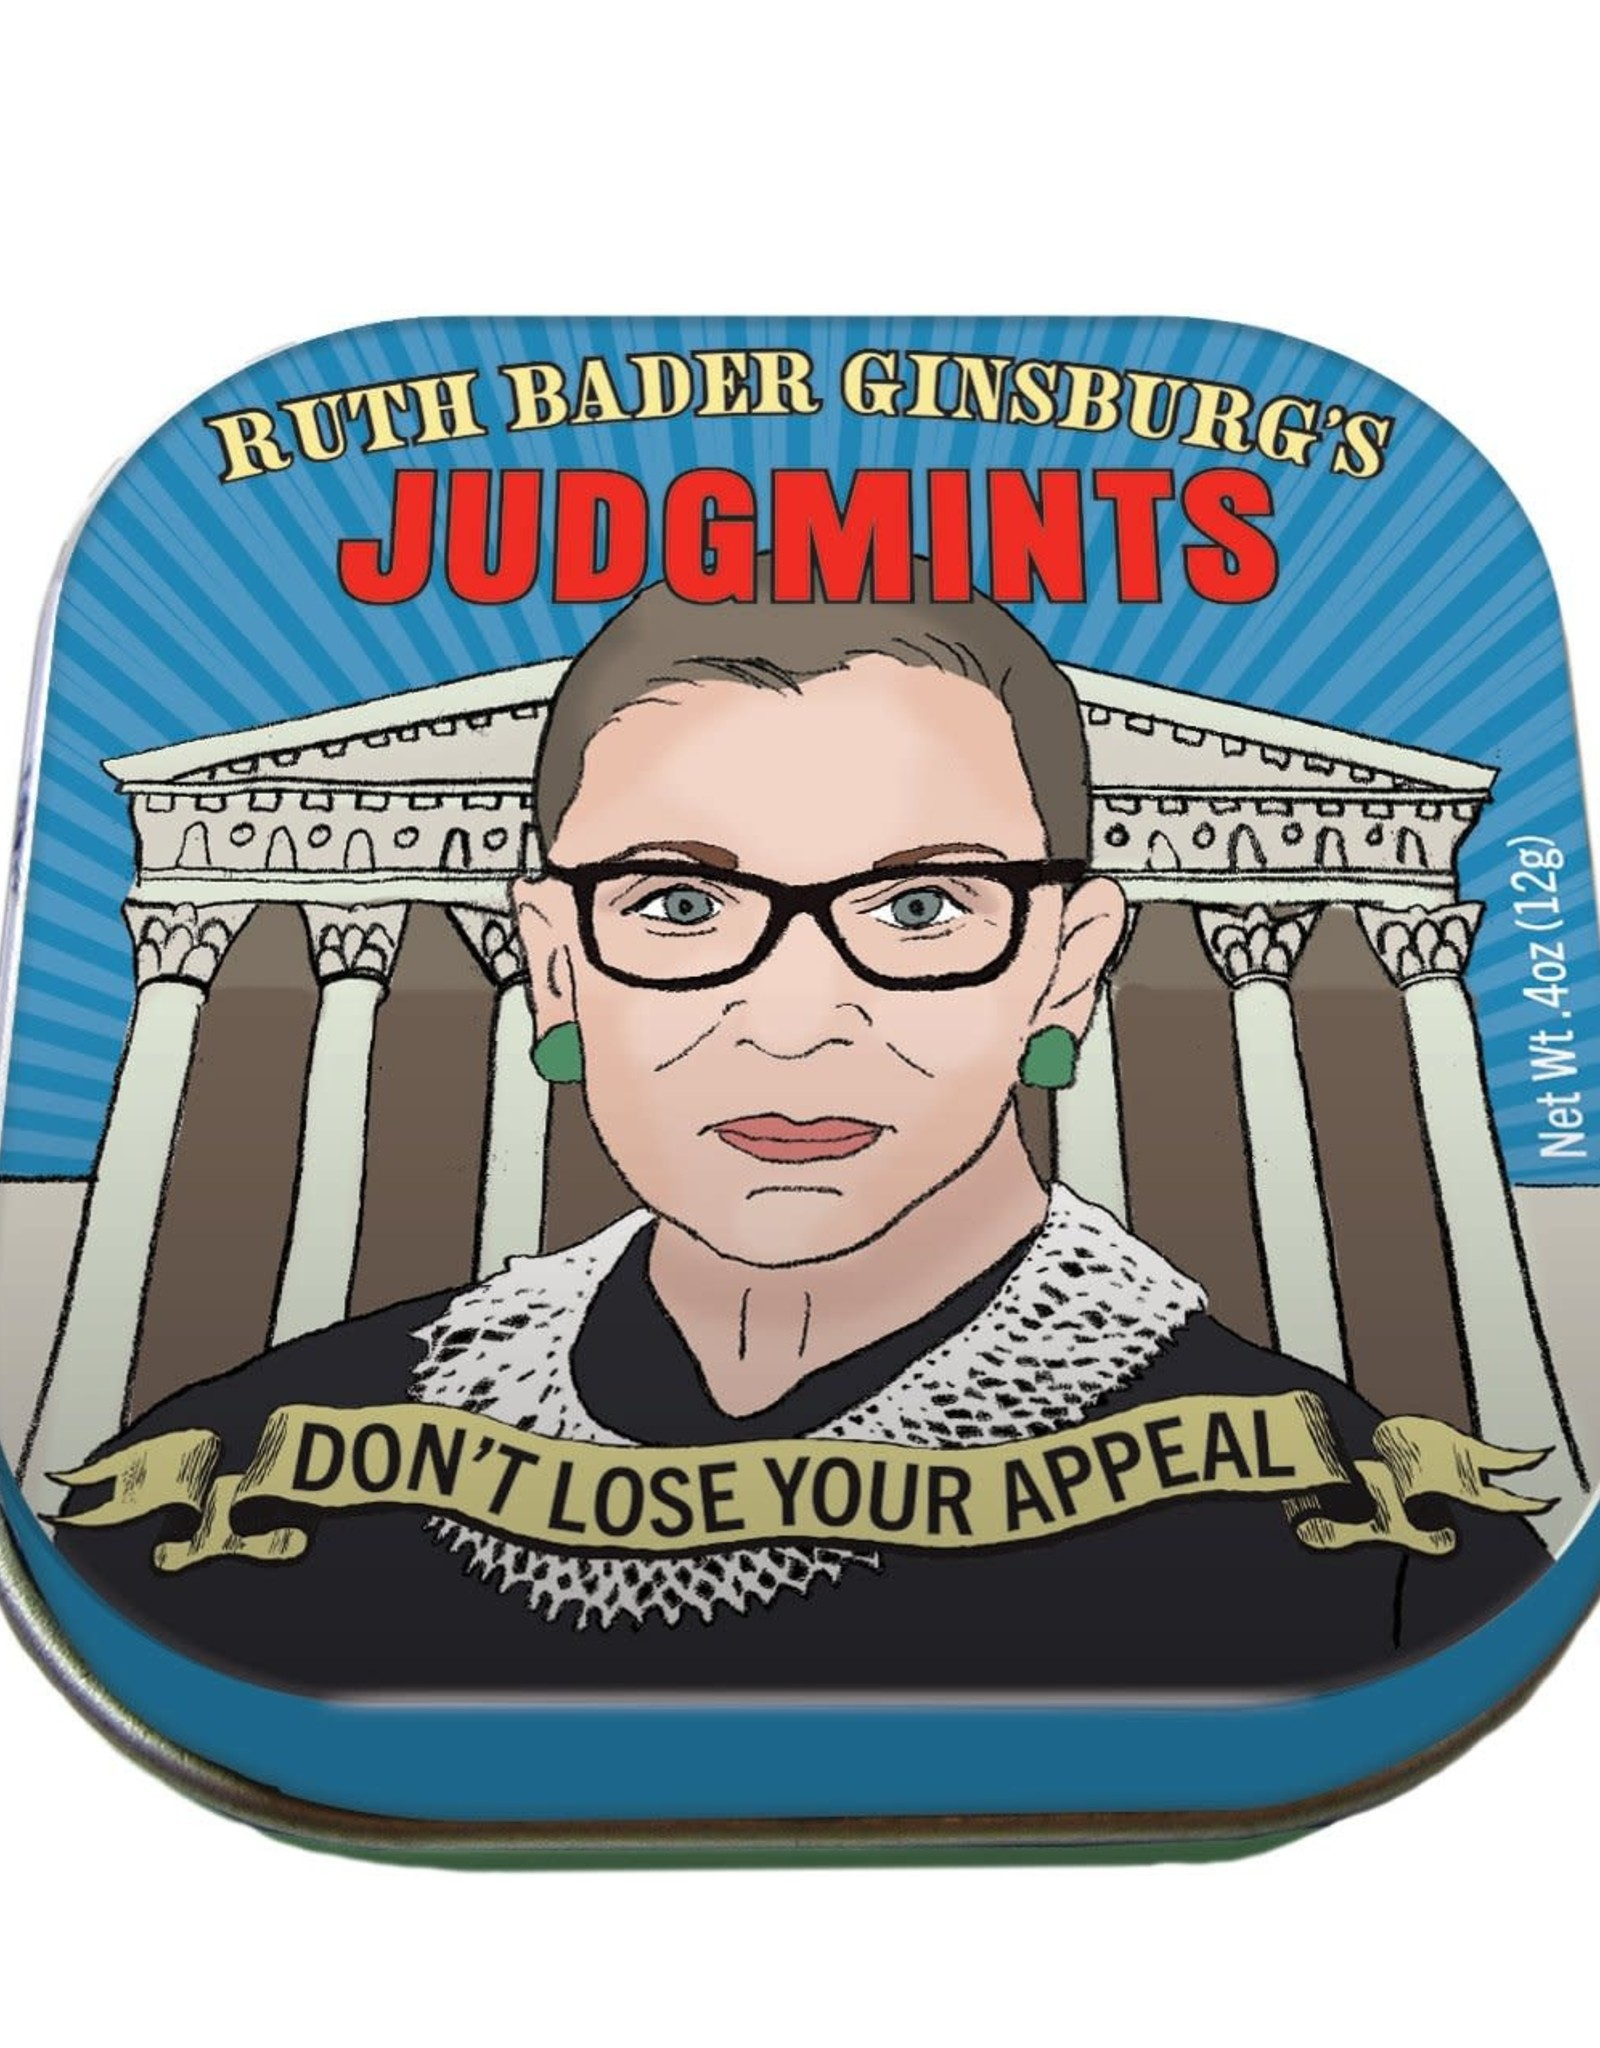 Ginsburgs Judgemints